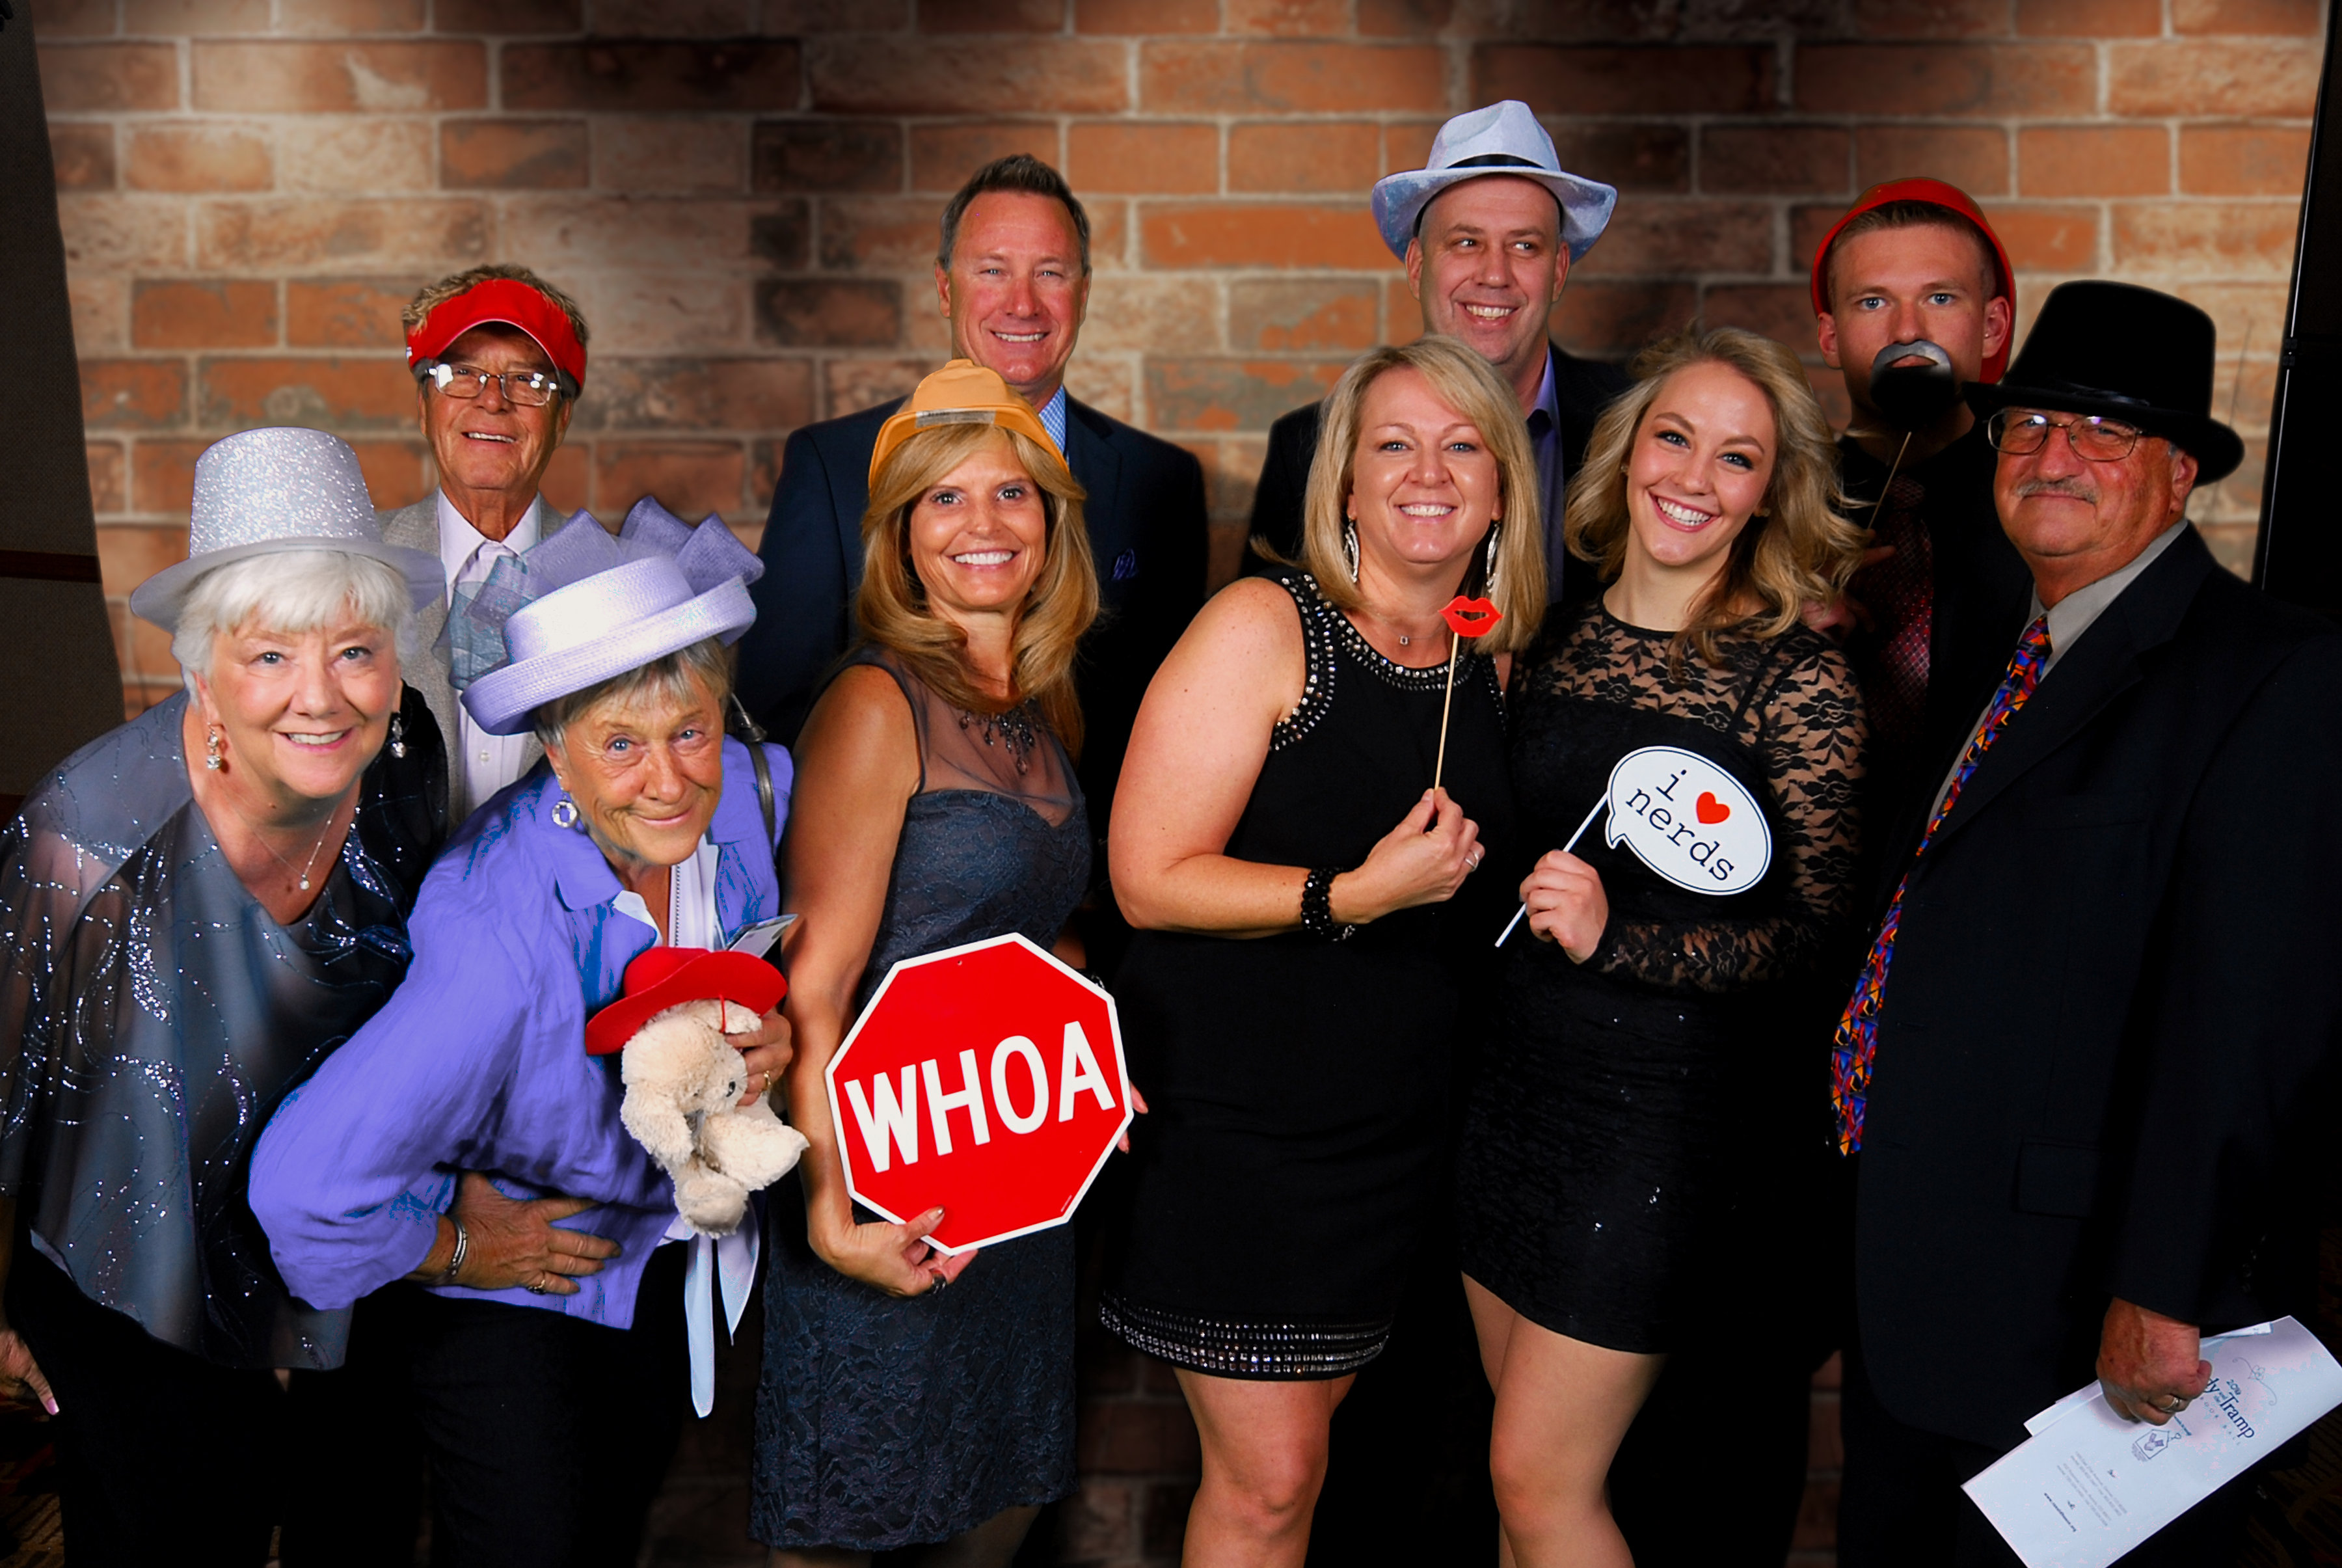 Storybook Ball guests posing in the photo booth